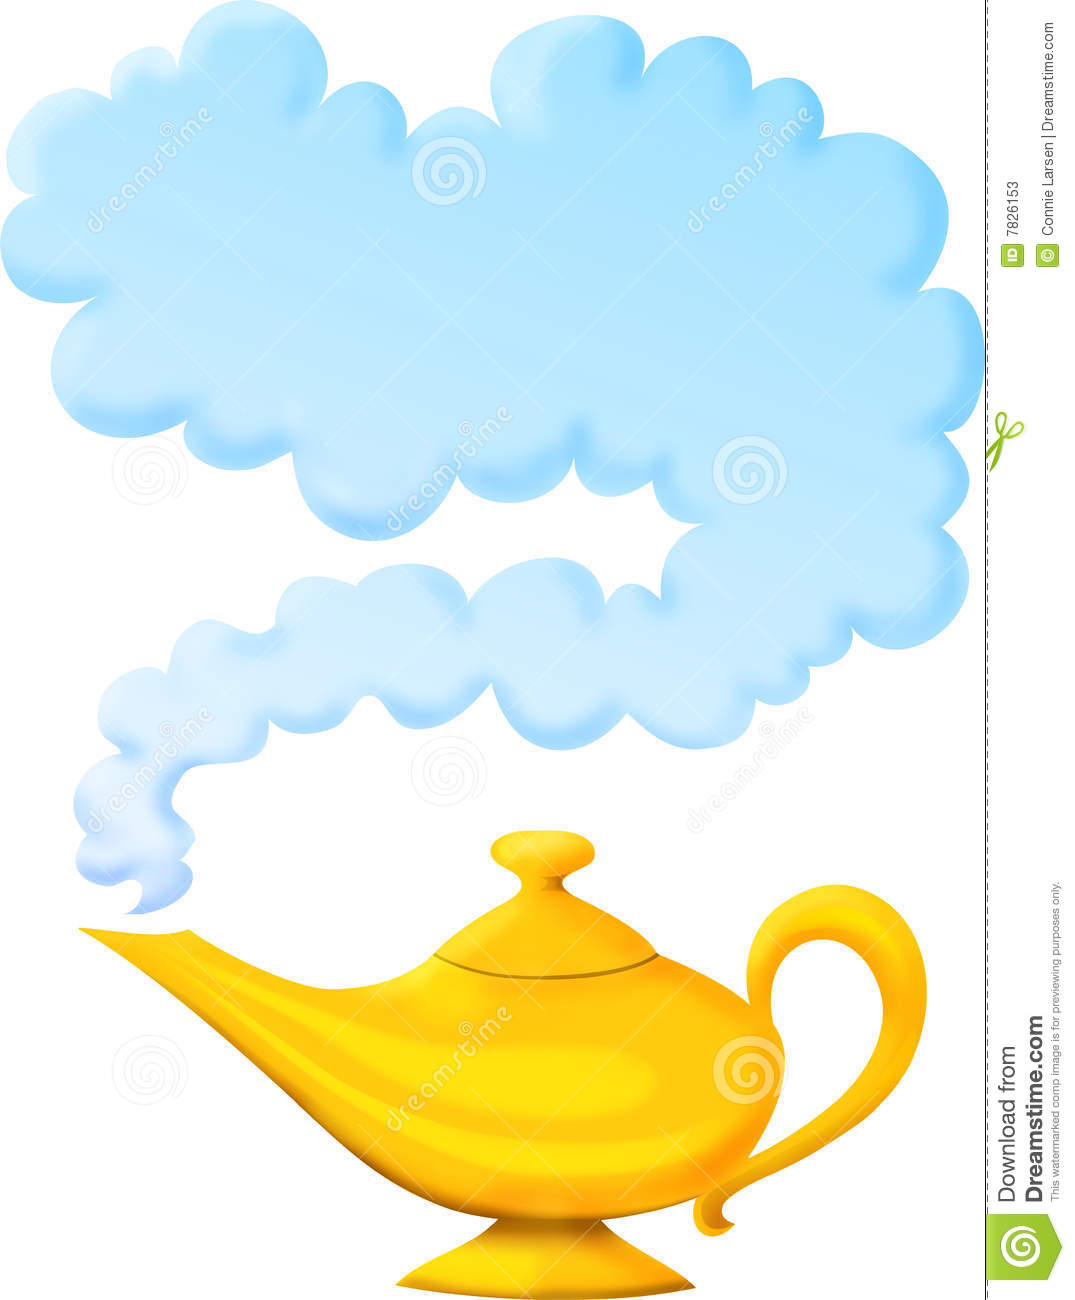 Genie Lamp clipart arabian night Genie Granting Lamp Wish From